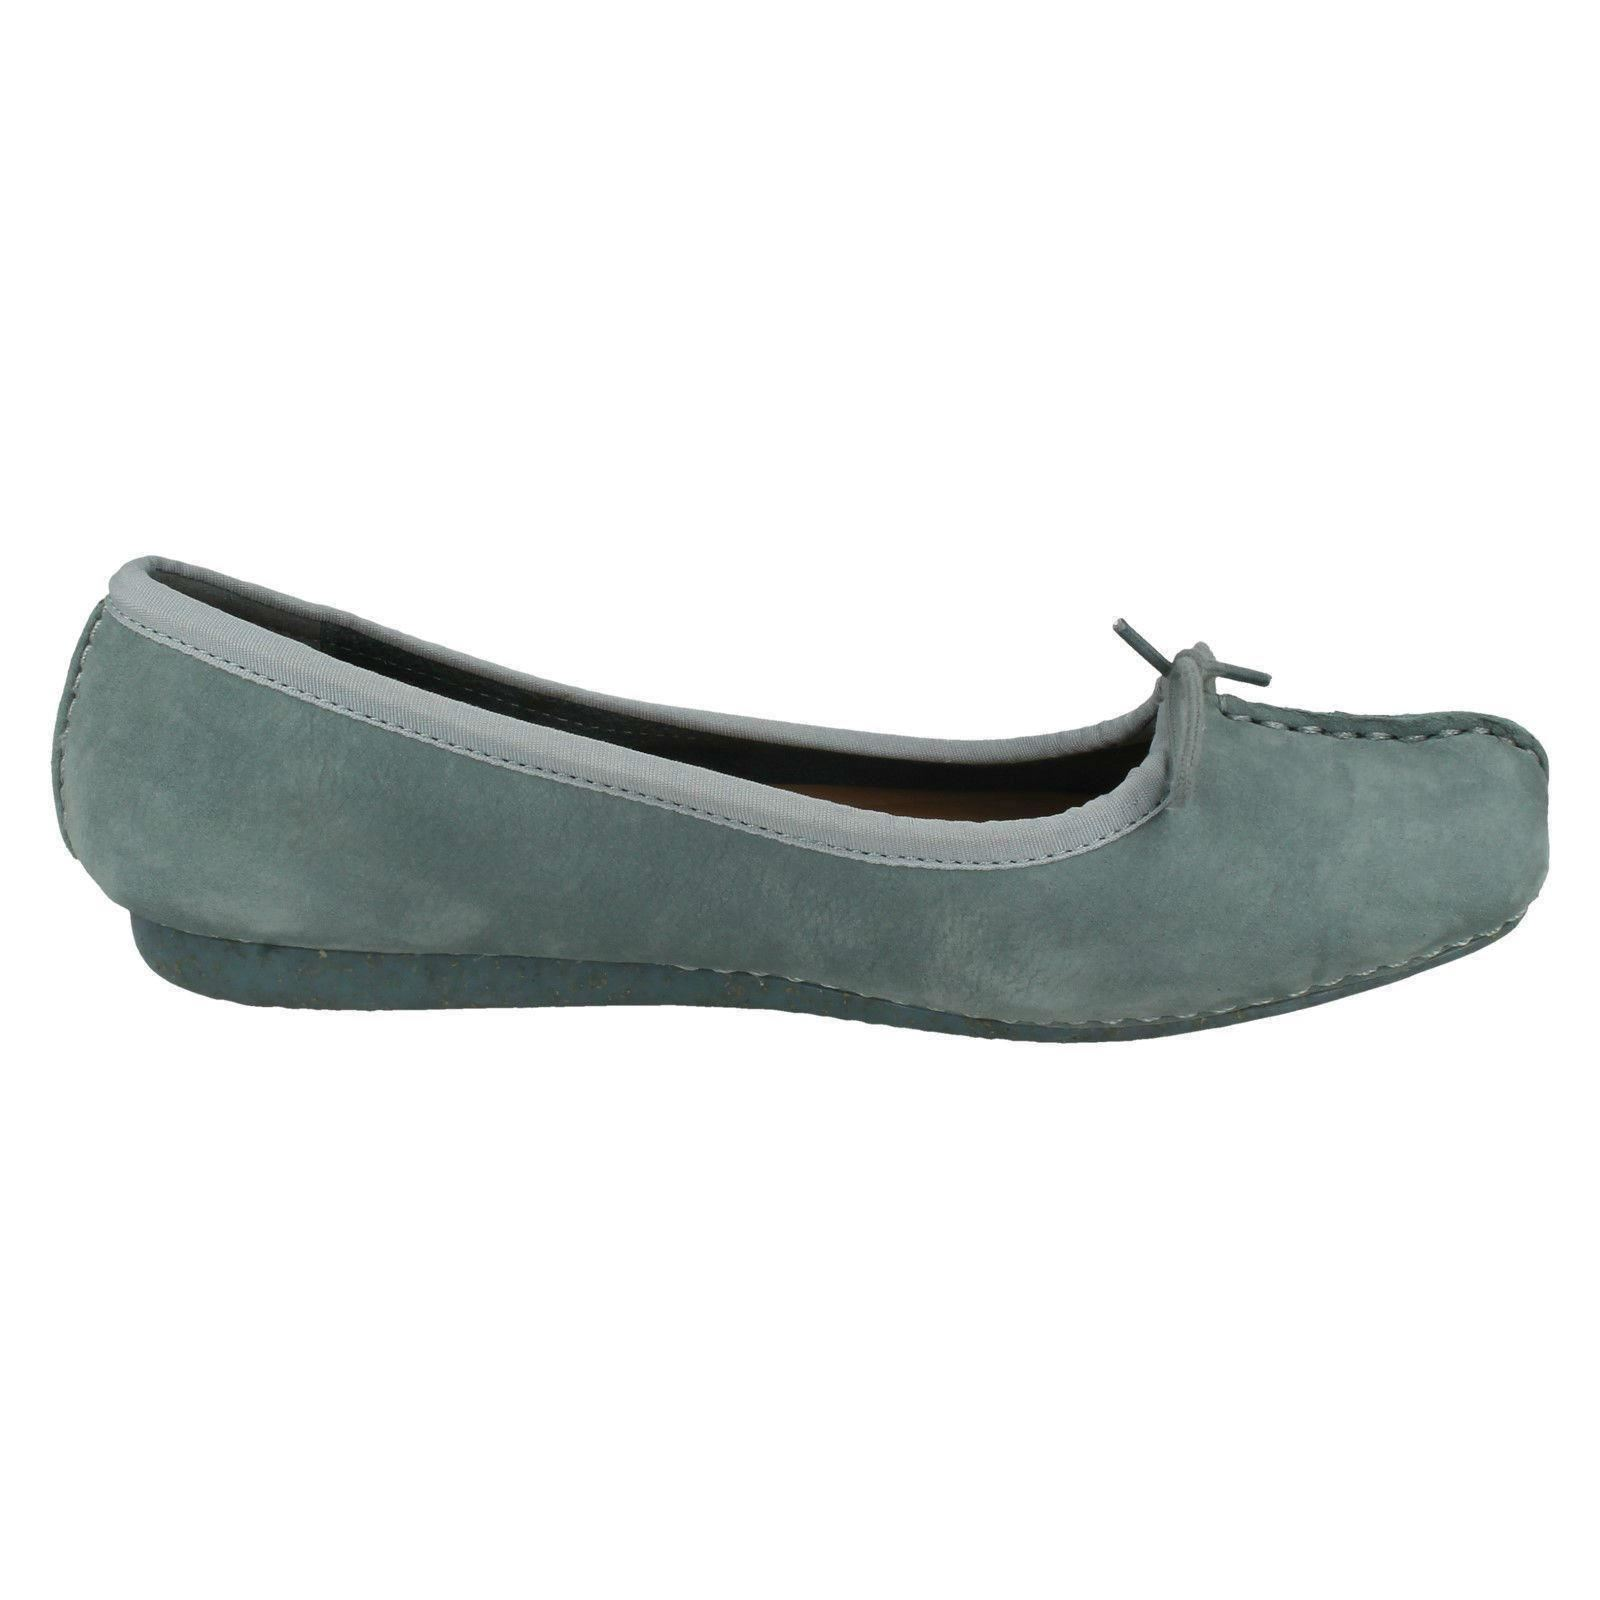 Ladies Clarks Unstructured Casual Slip On Leather Ballerina Flats Freckle Ice 17